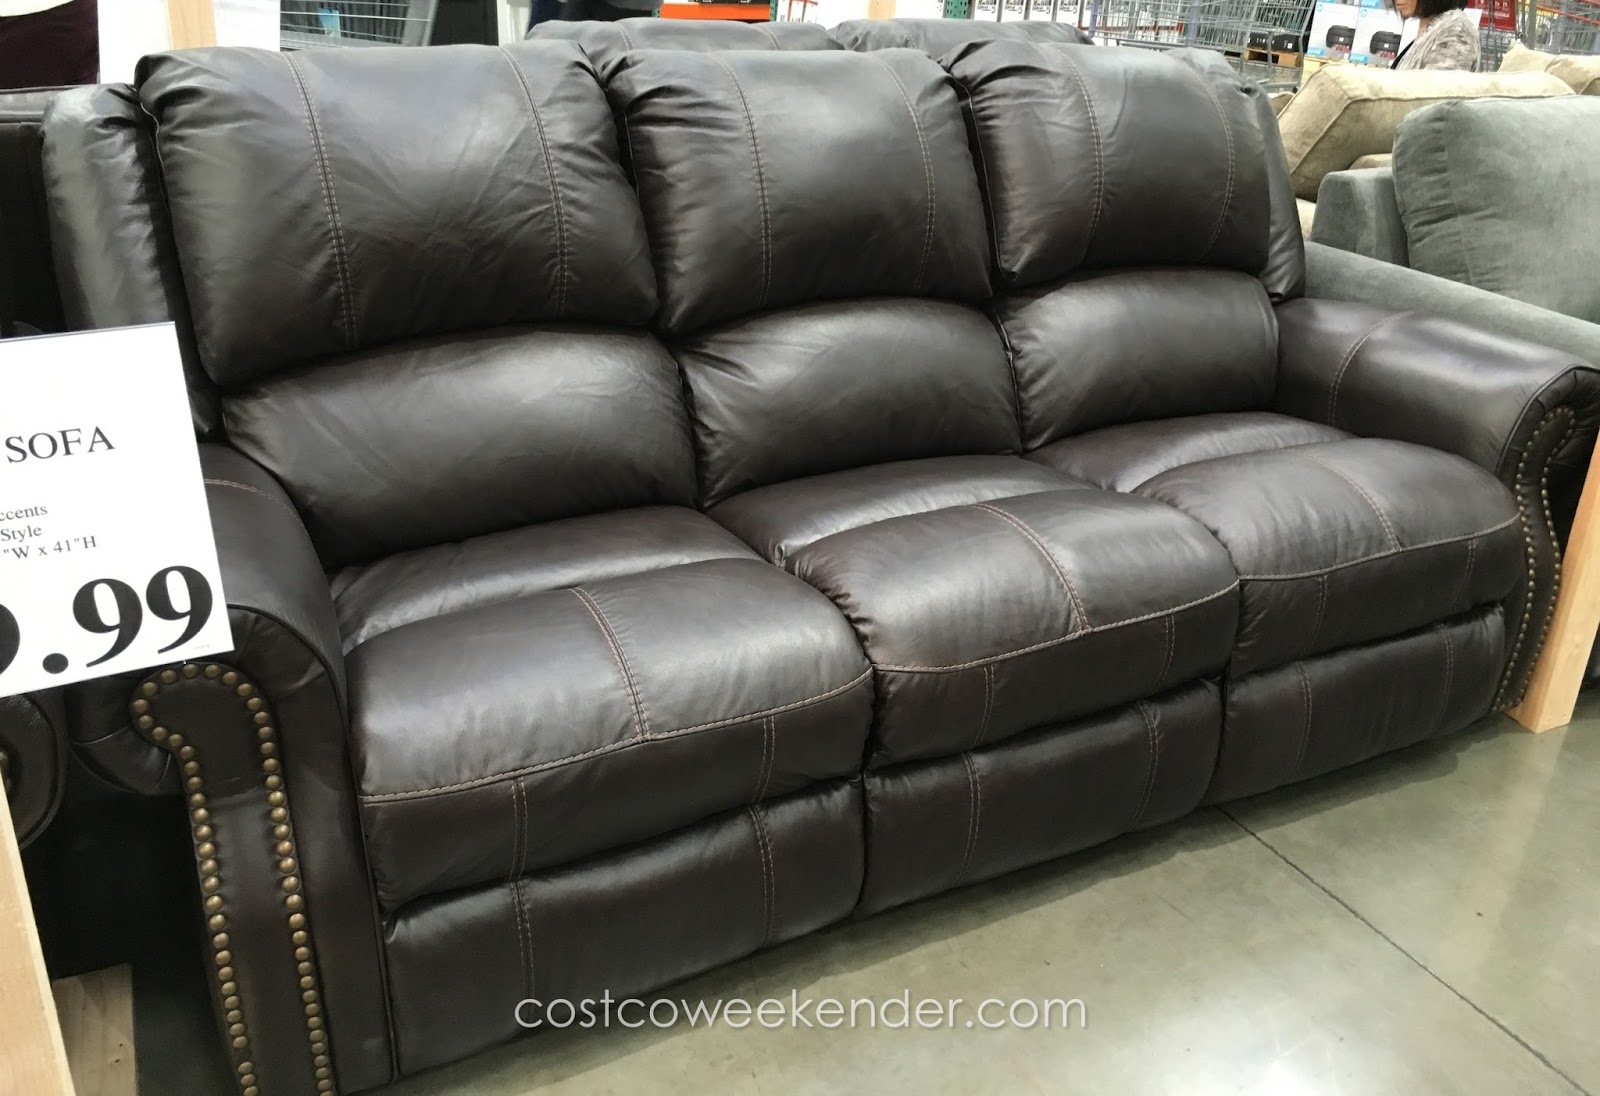 Costco Leather Sectional | Leather Sectional Costco | Costco Furniture Sofa